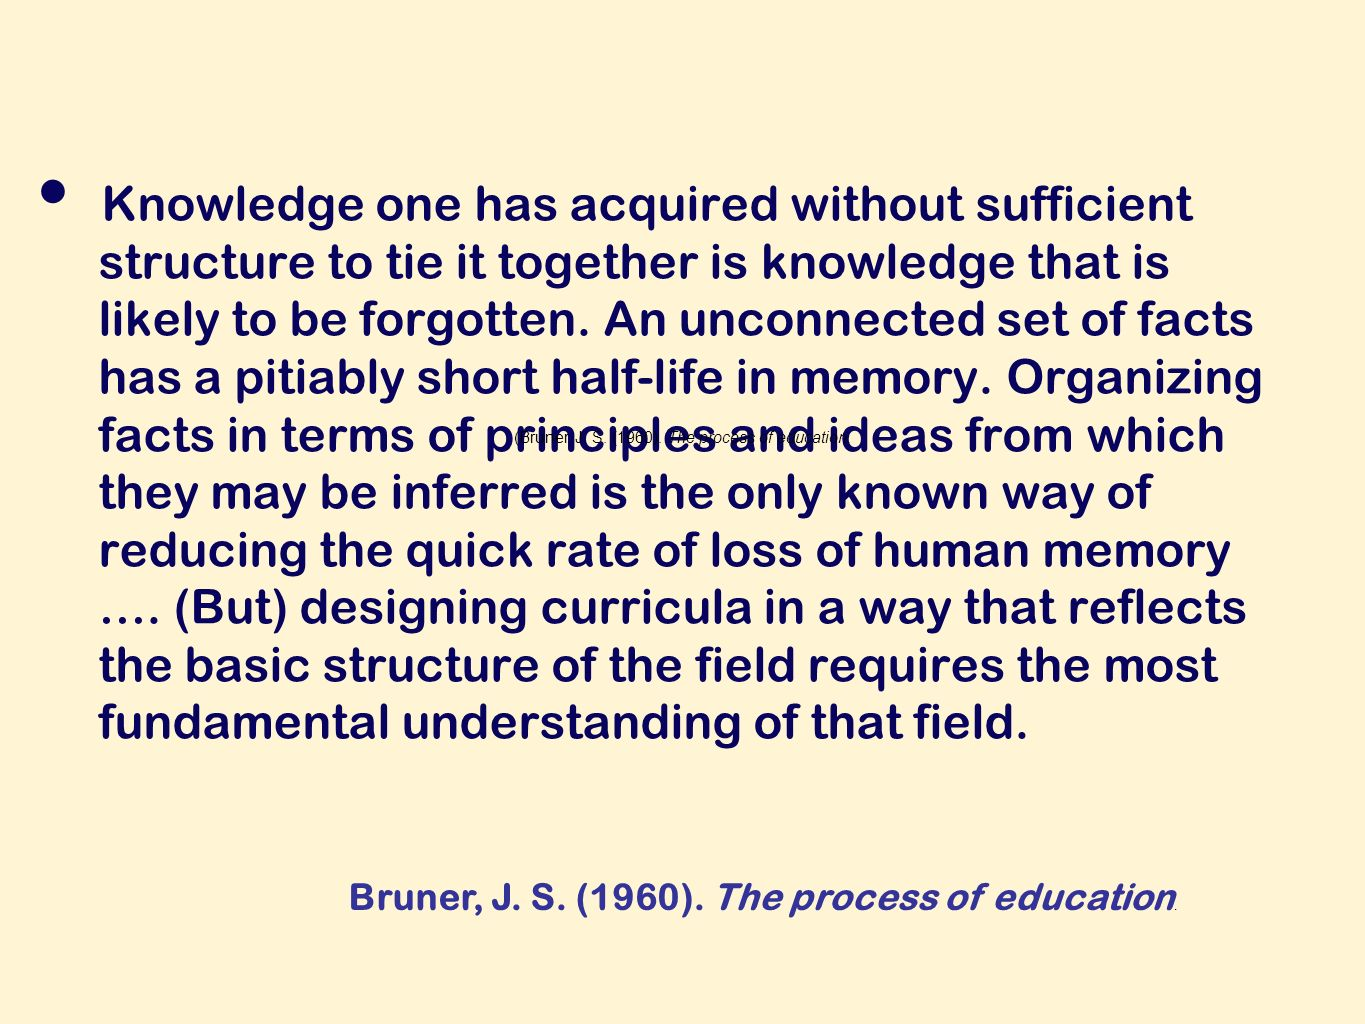 Knowledge one has acquired without sufficient structure to tie it together is knowledge that is likely to be forgotten.